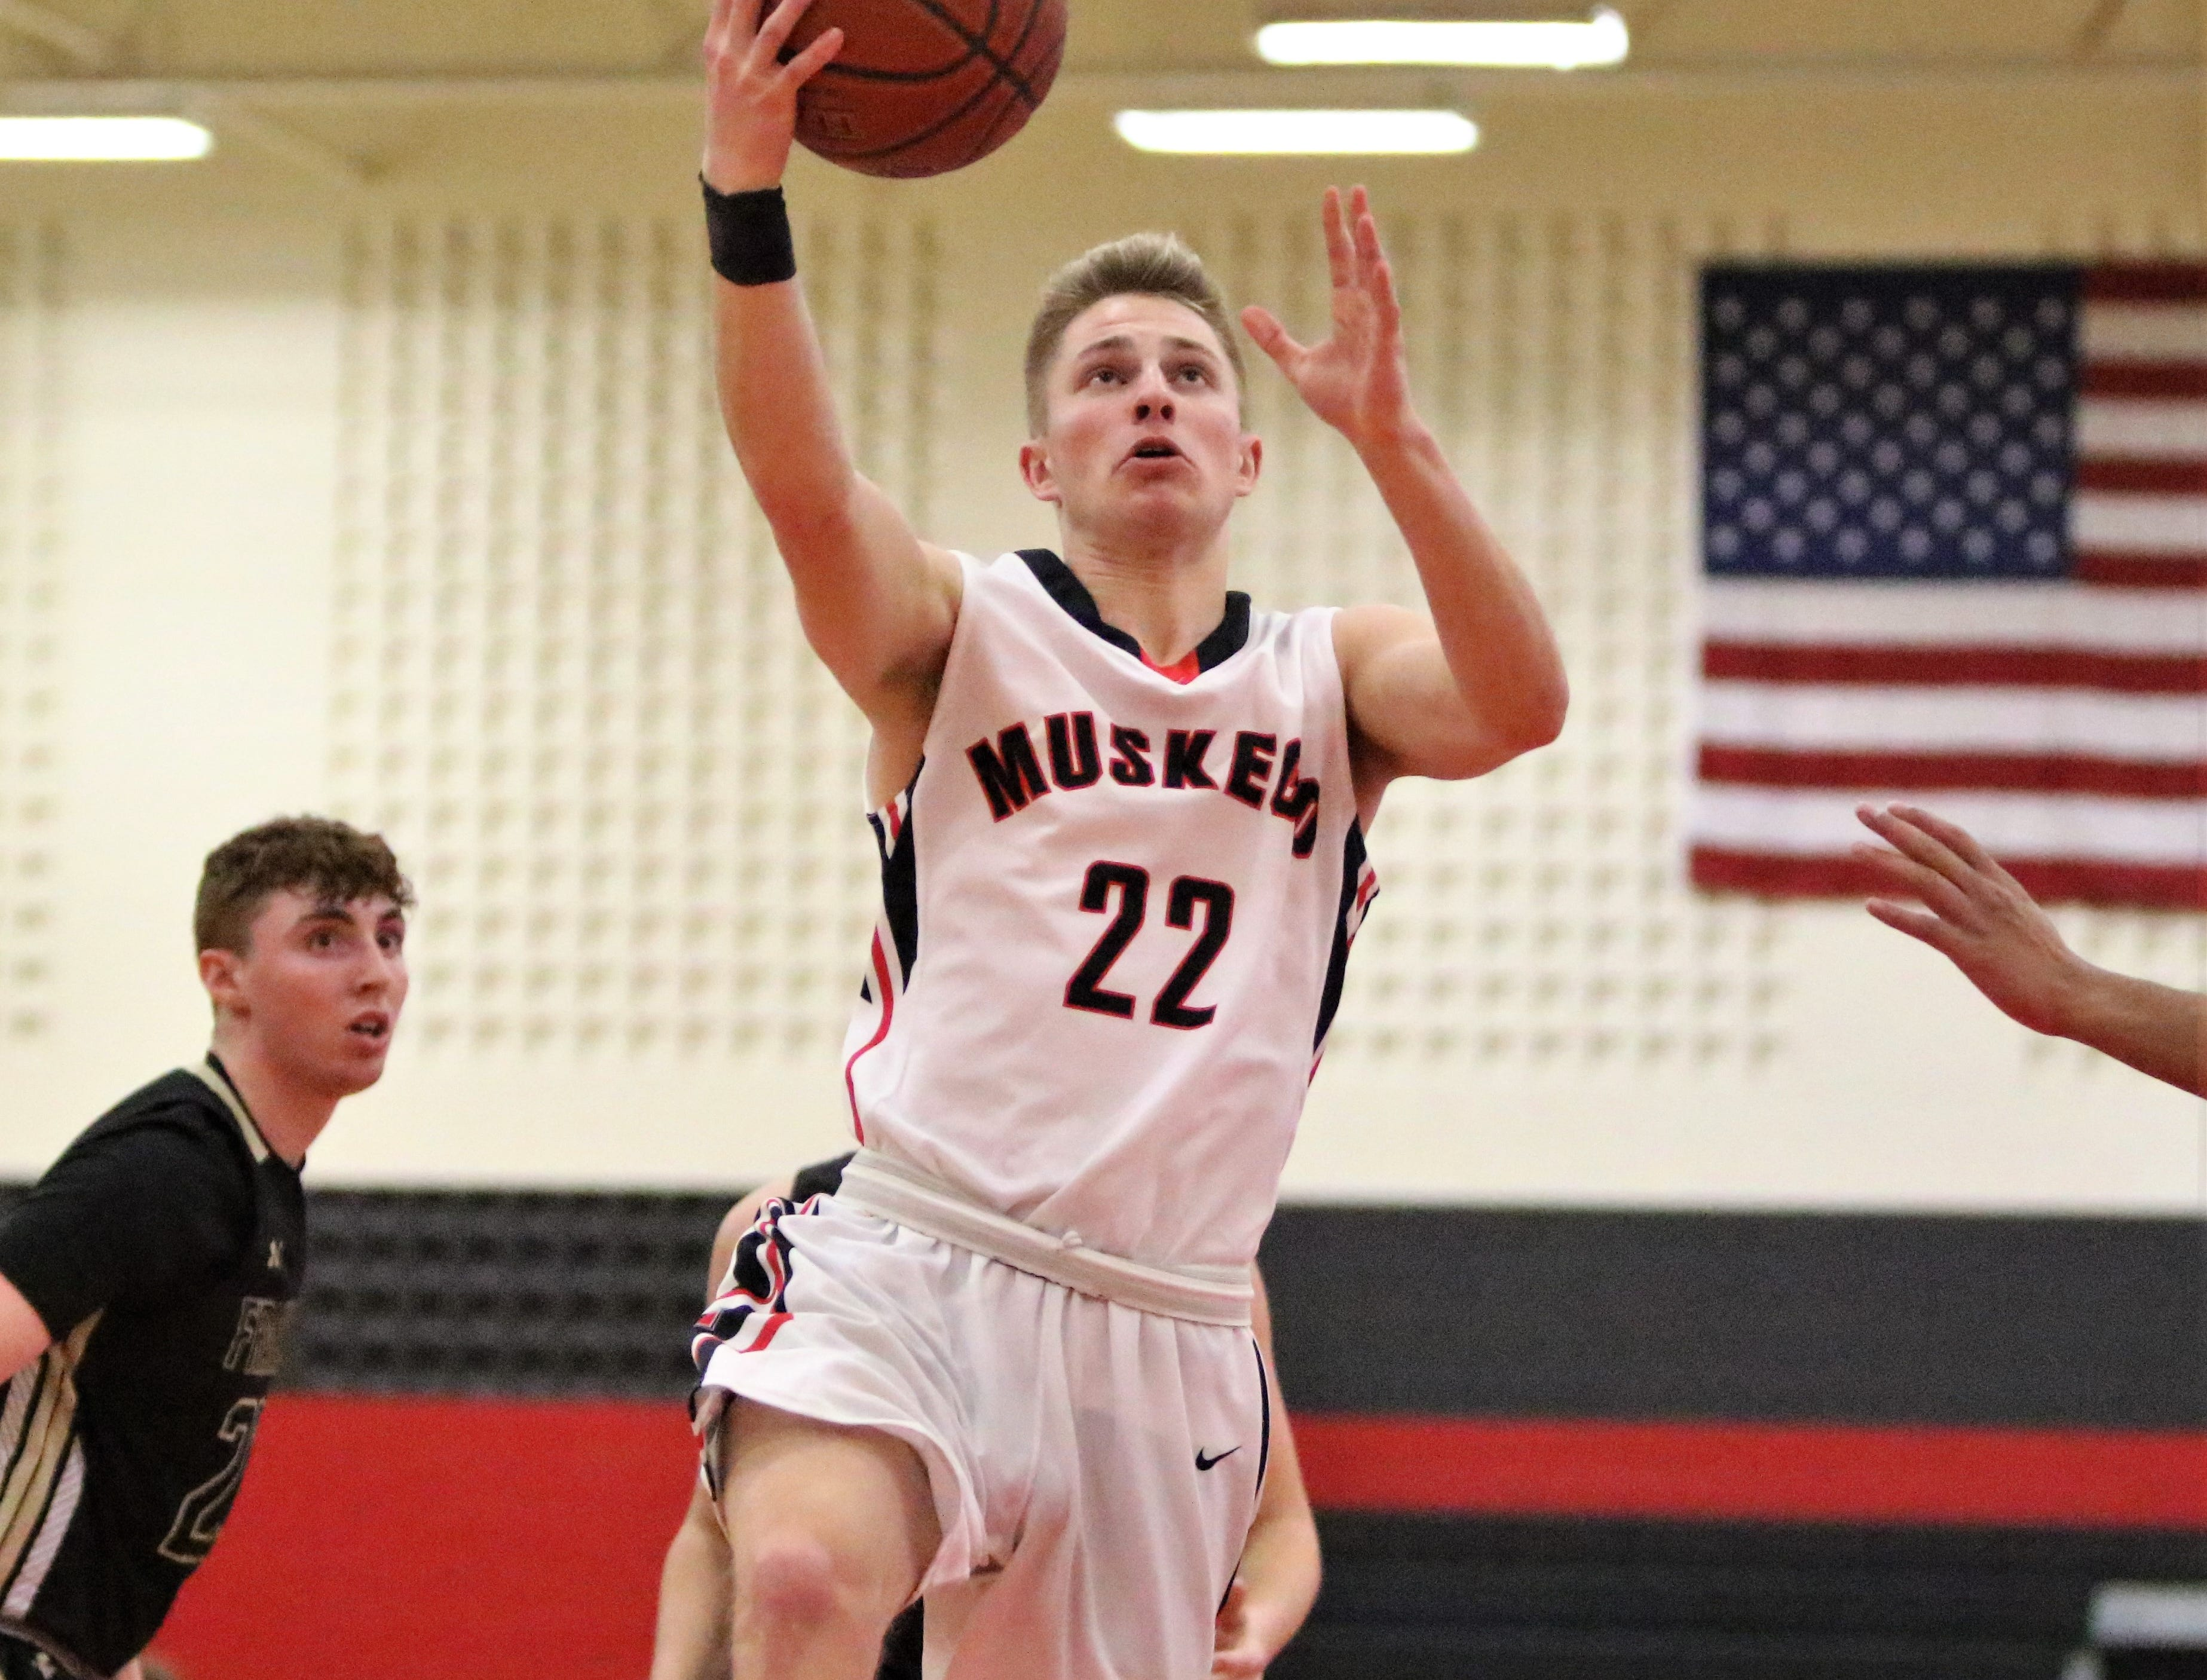 Muskego forward Sam Chovanec goes up for a layup against Franklin on Feb. 11, 2019.